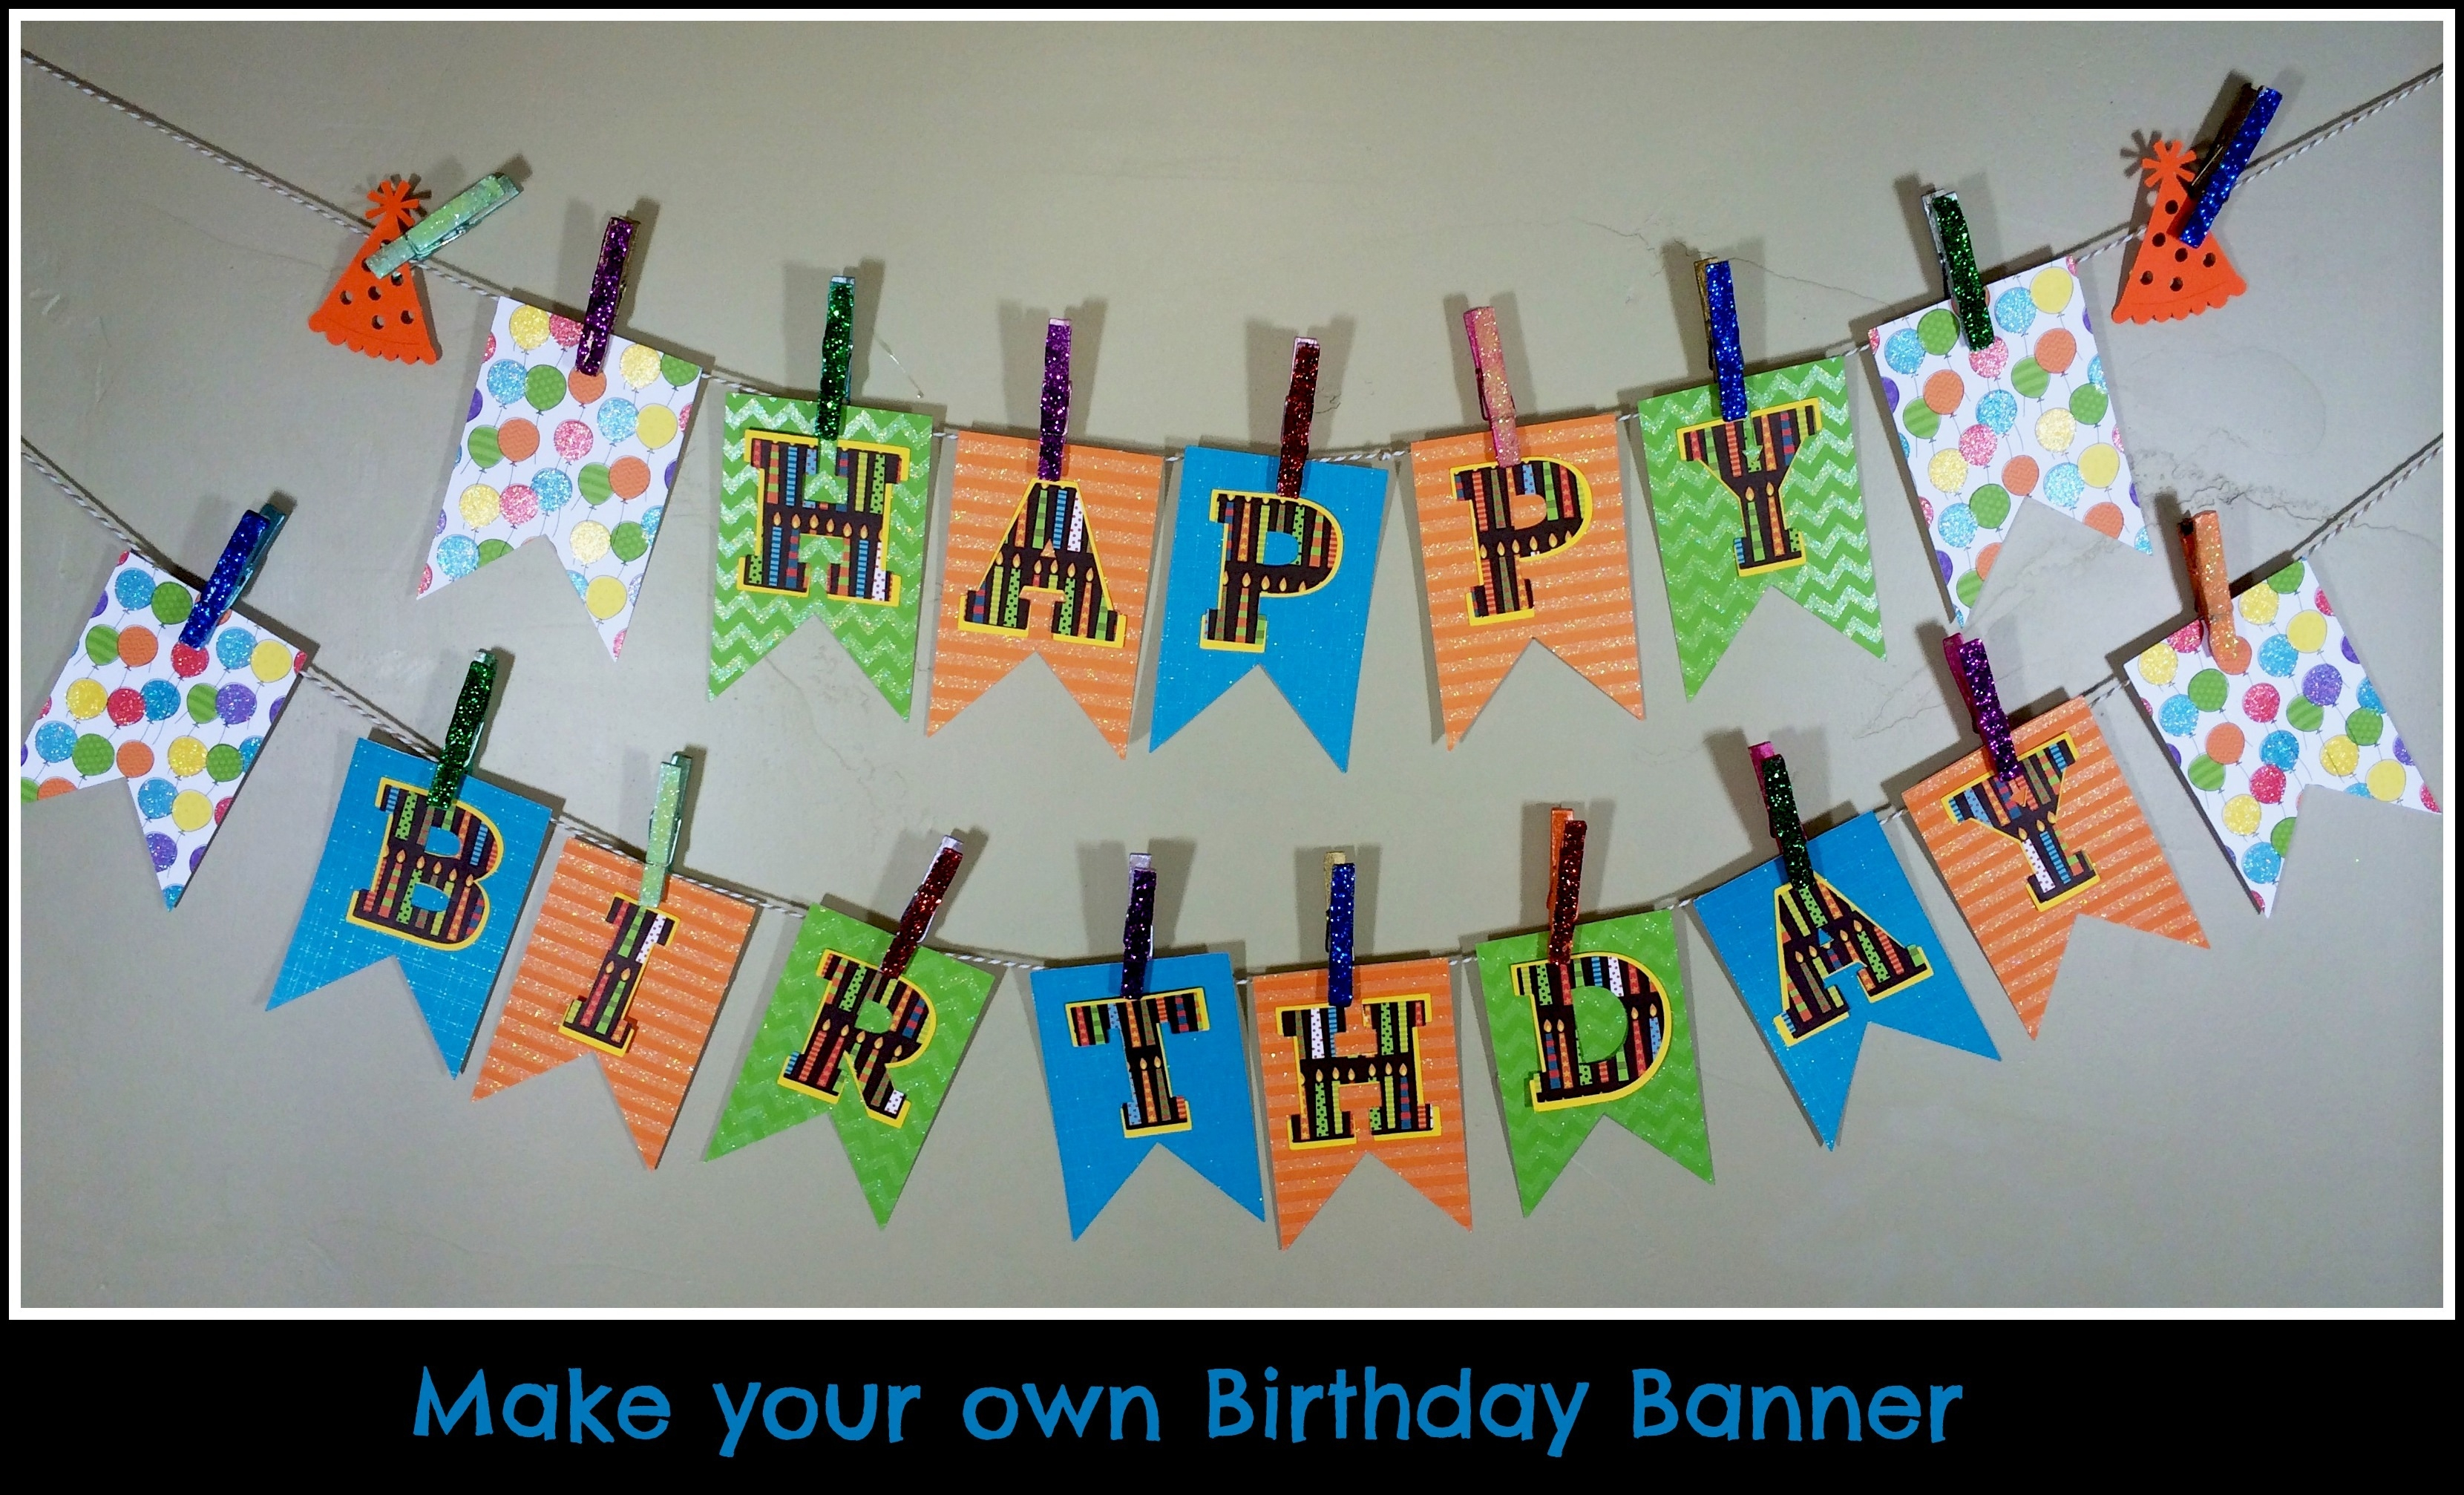 homemade birthday banner craft ; design%2520your%2520own%2520birthday%2520banner%2520;%2520make-your-own-birthday-pennant-banner-a-sparkle-of-genius-with-make-your-own-banner